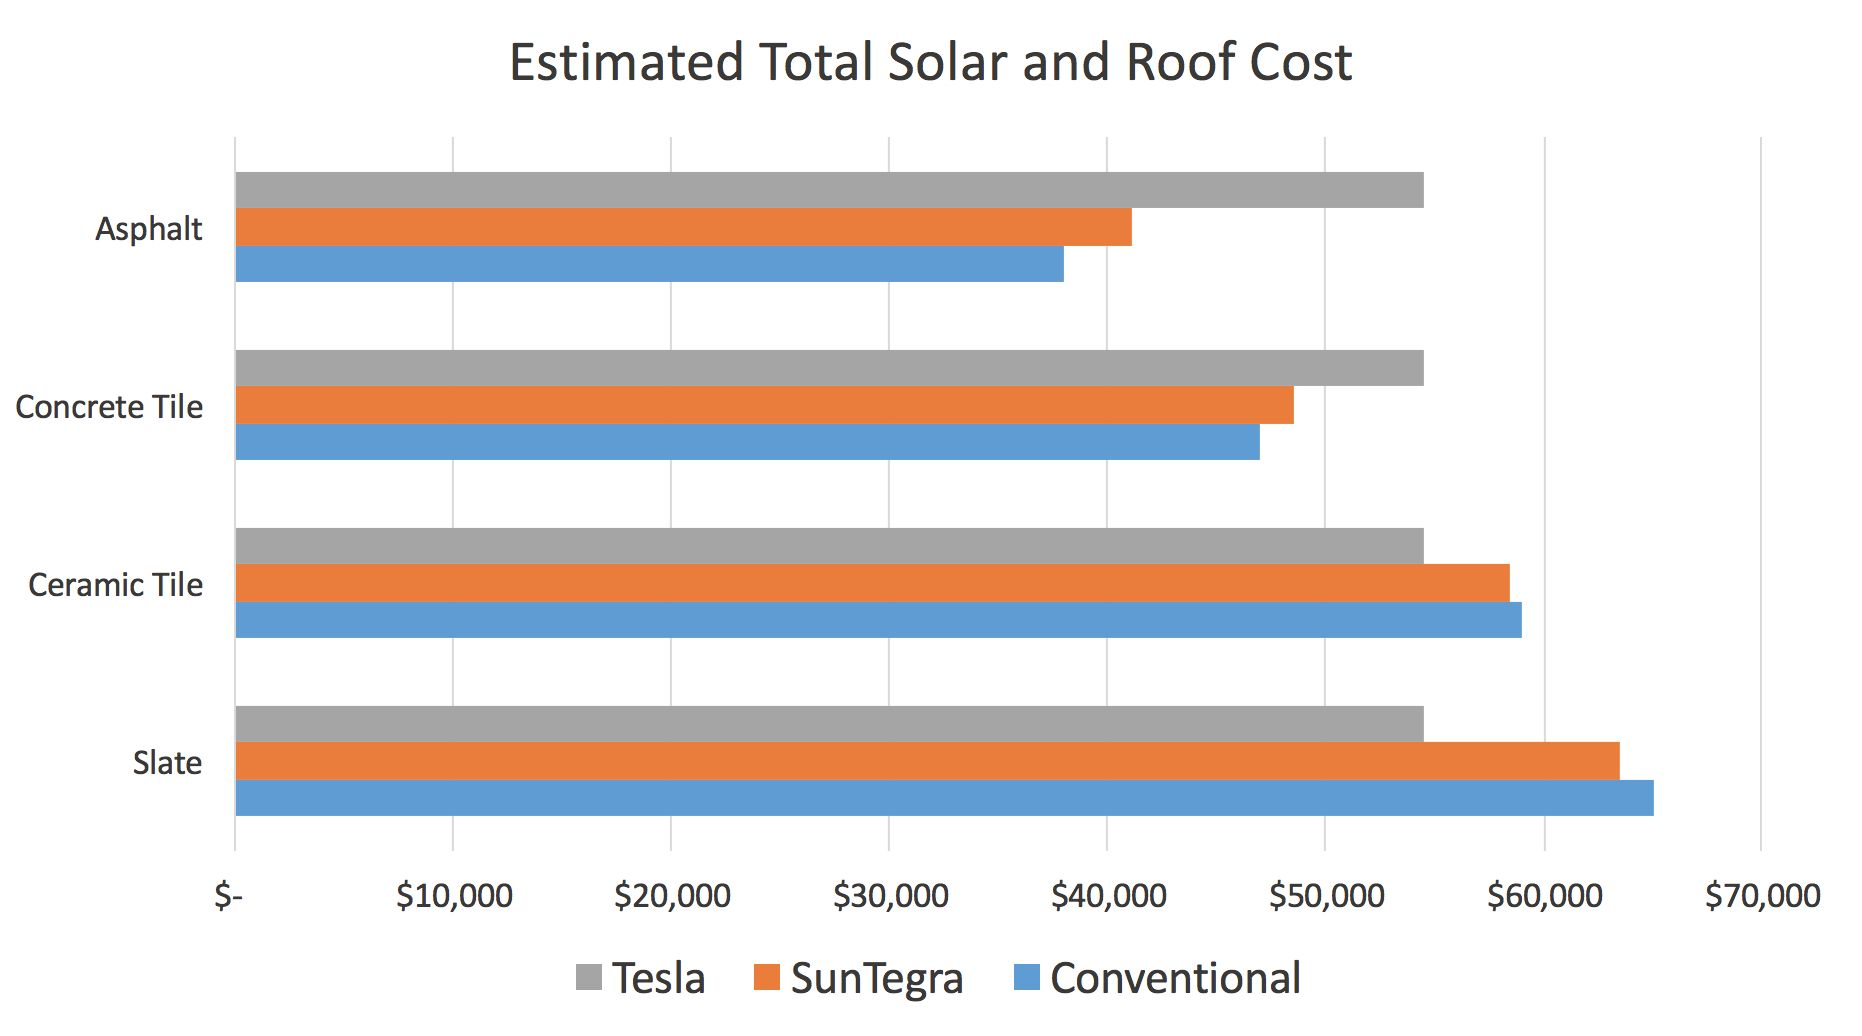 Will Tesla's Solar Roof Change the Residential Solar Market